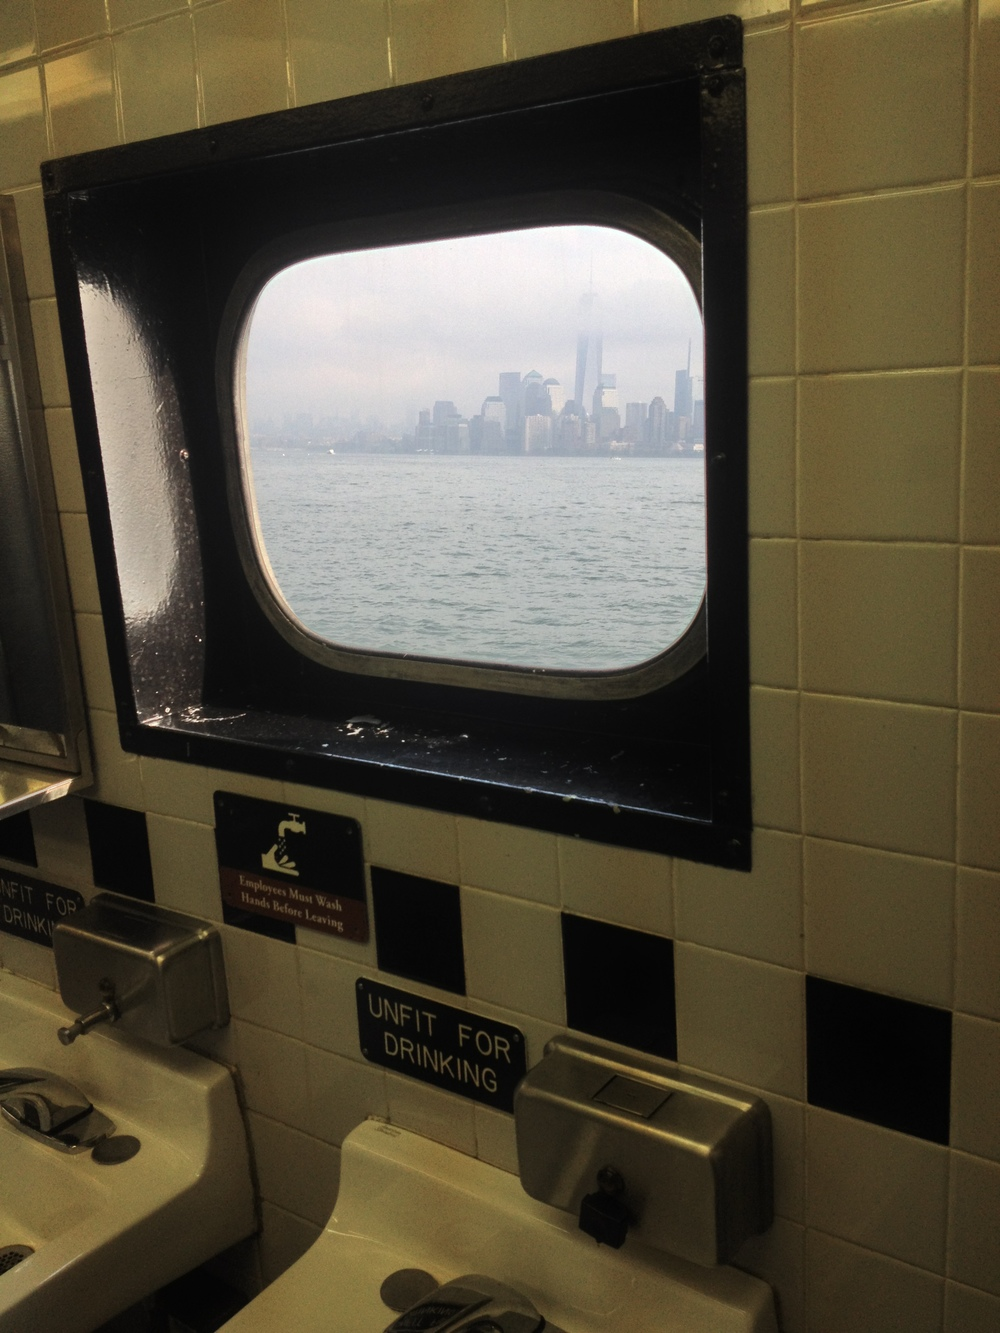 Continuing with my series on 'view from Men's room windows'. On the ferry to the Statue of Liberty.